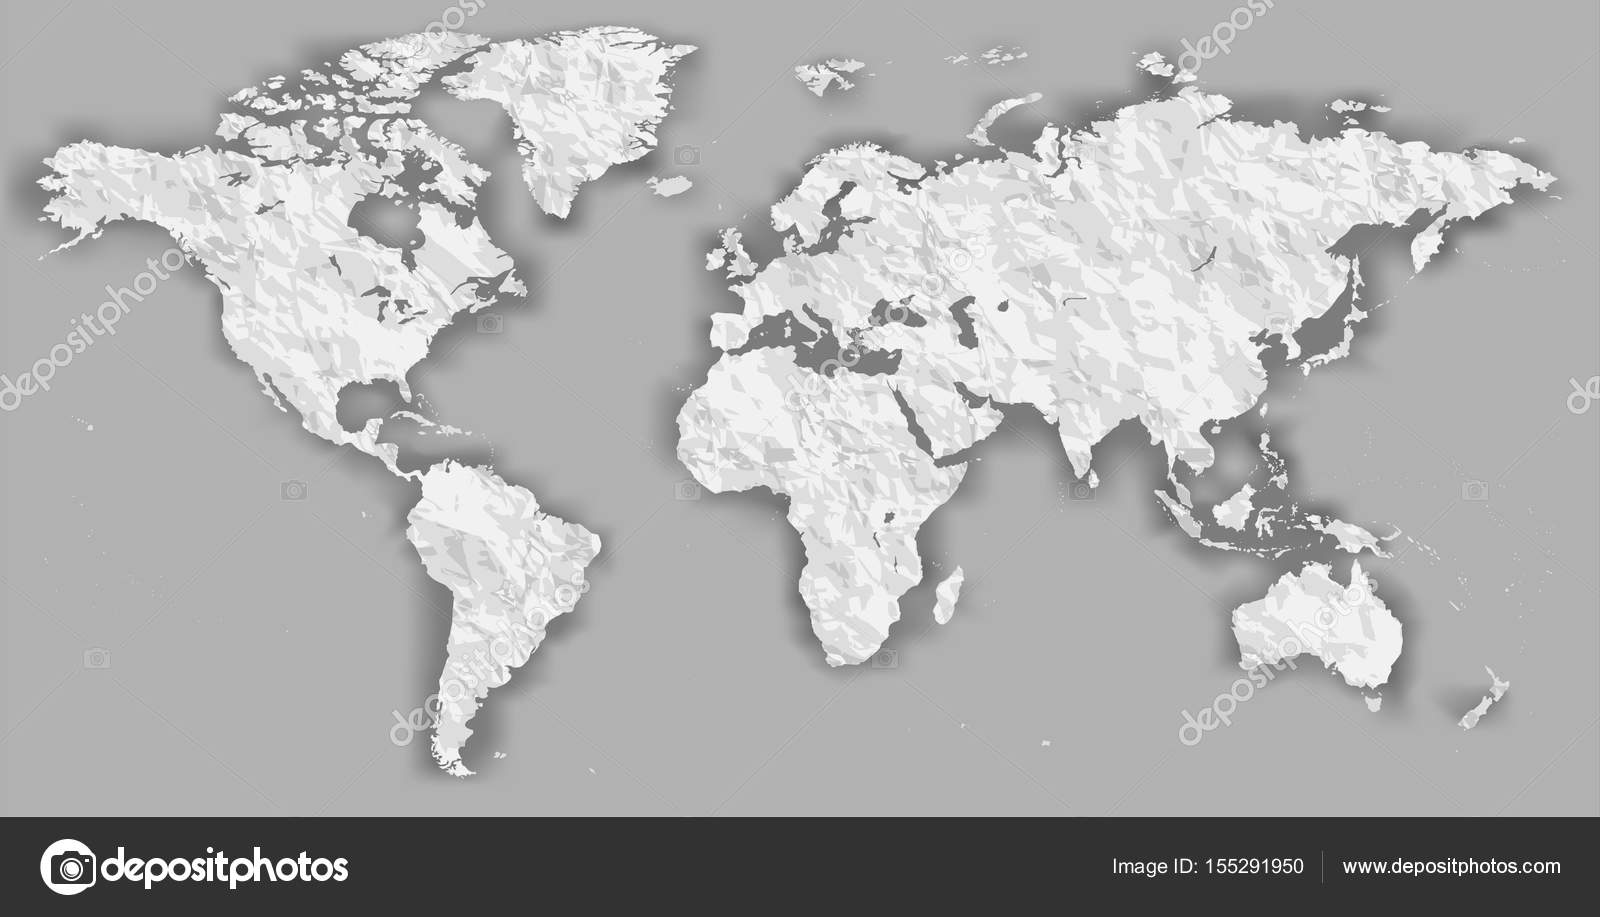 Vector blank torn crumpled paper cut out white silhouette similar vector blank torn crumpled paper cut out white silhouette similar world map monochrome worldmap template website design infographics detailed flat earth gumiabroncs Image collections